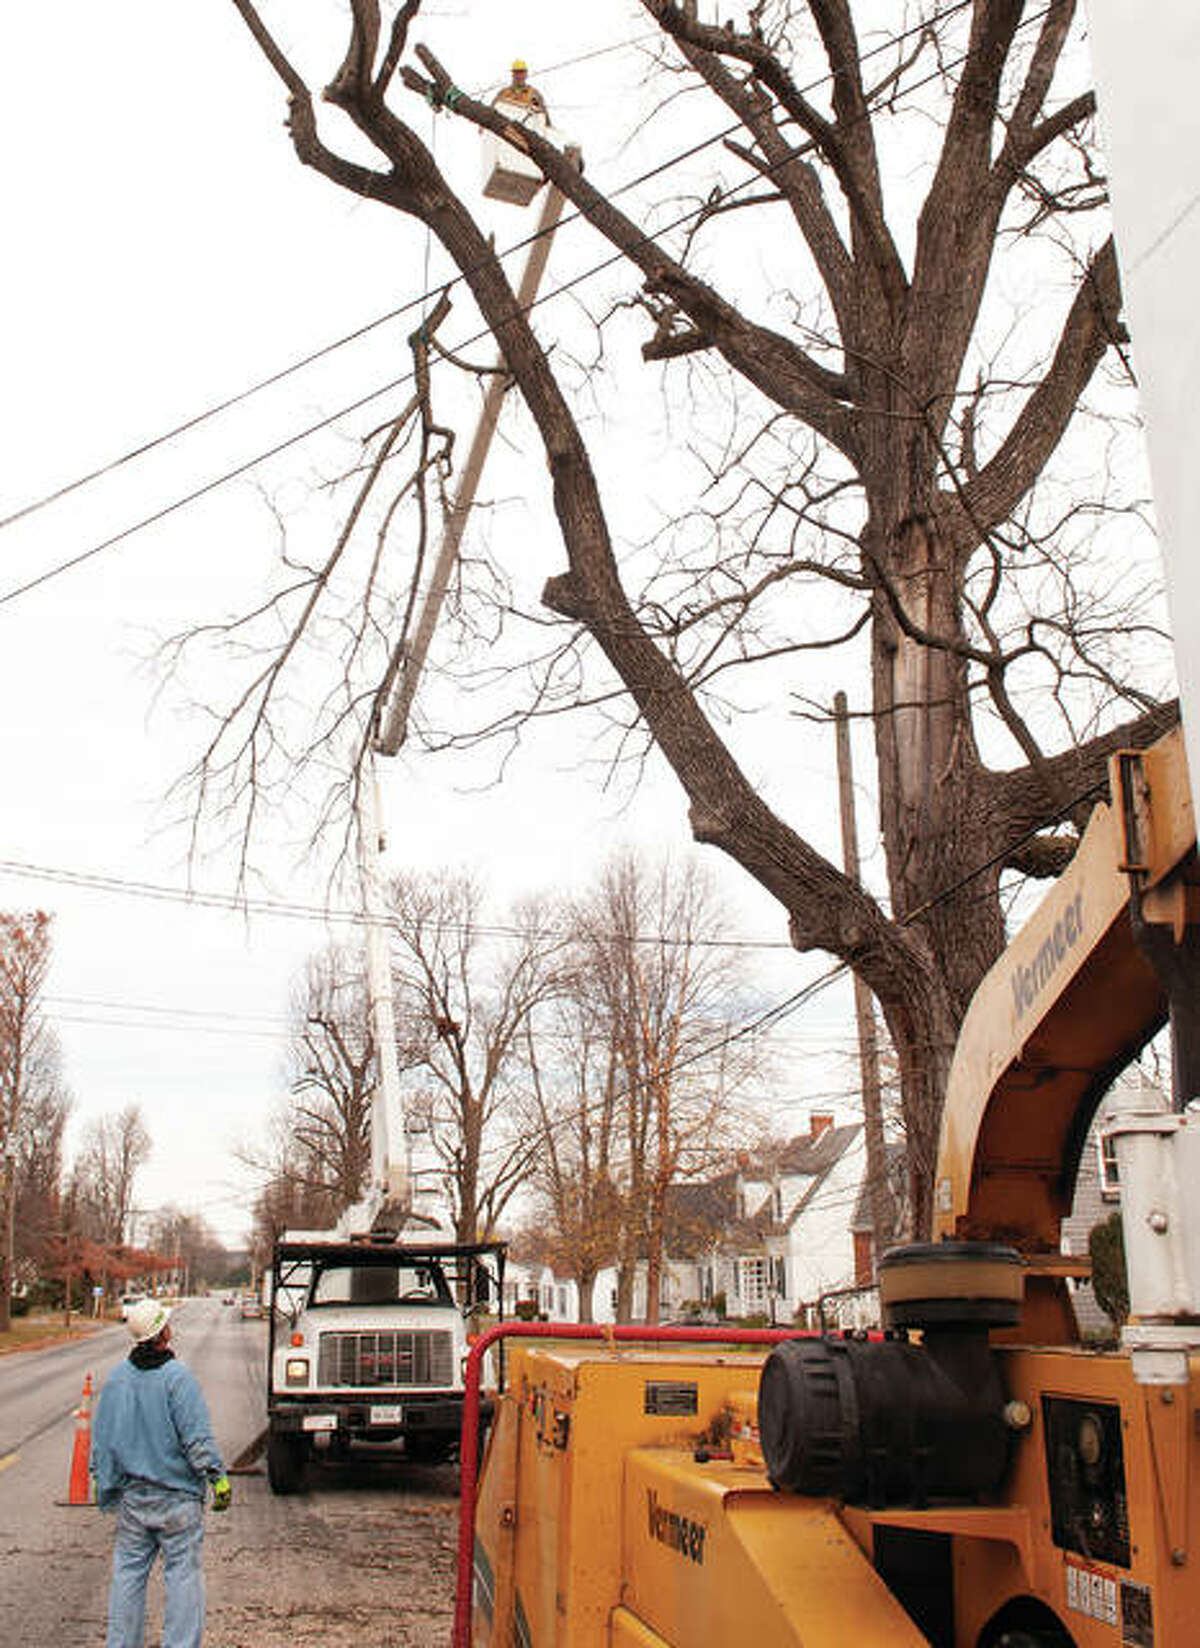 Turner Tree Service employee Randy Still looks up as Eric Christison carefully lowers a large limb, navigating the power lines. The tree limbs were being removed to avoid interferring with powerlines along Webster Avenue in Jacksonville.